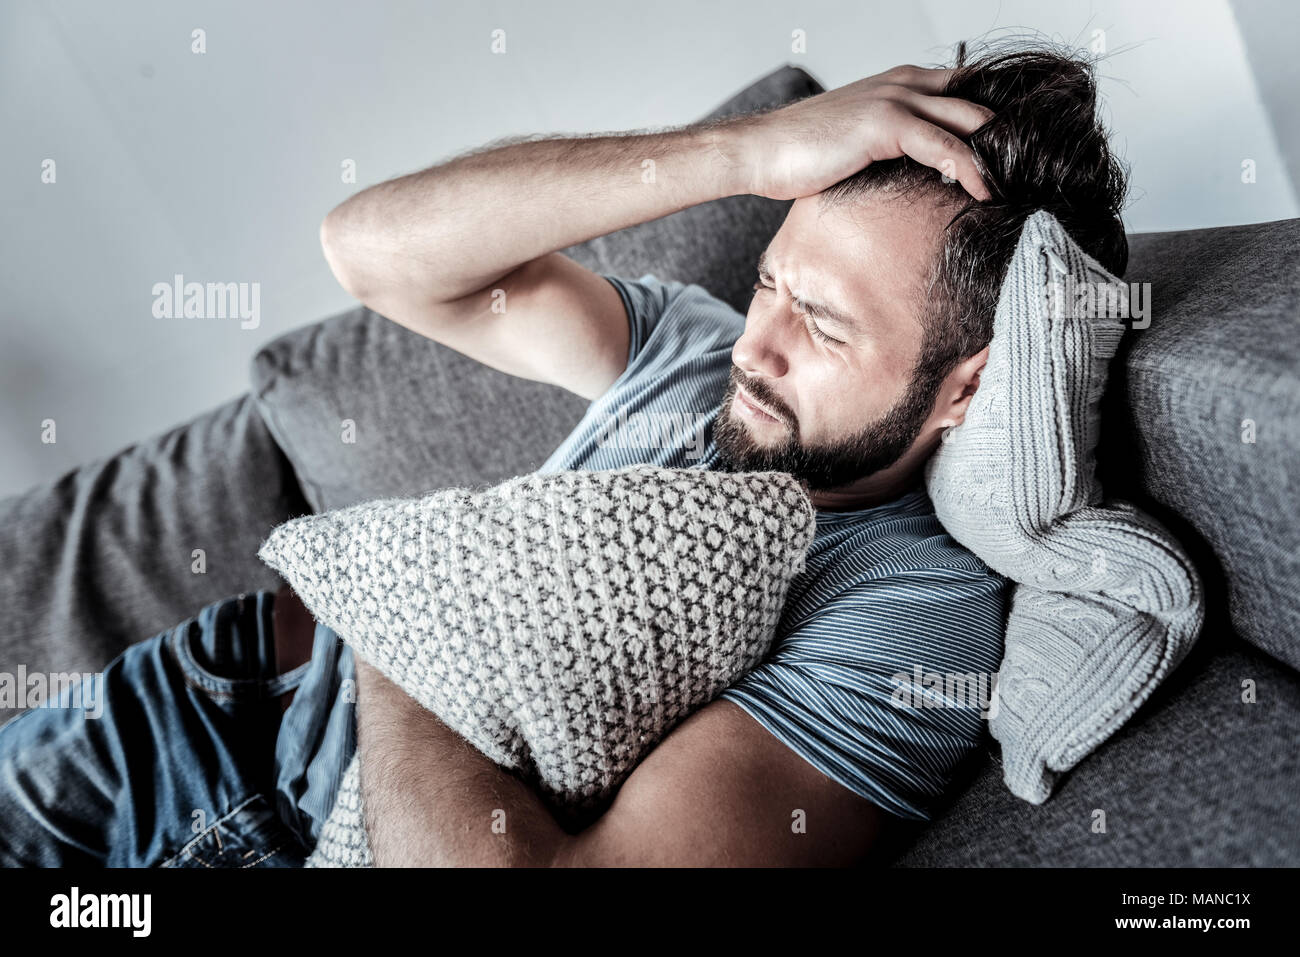 Unhappy young man suffering from depression - Stock Image